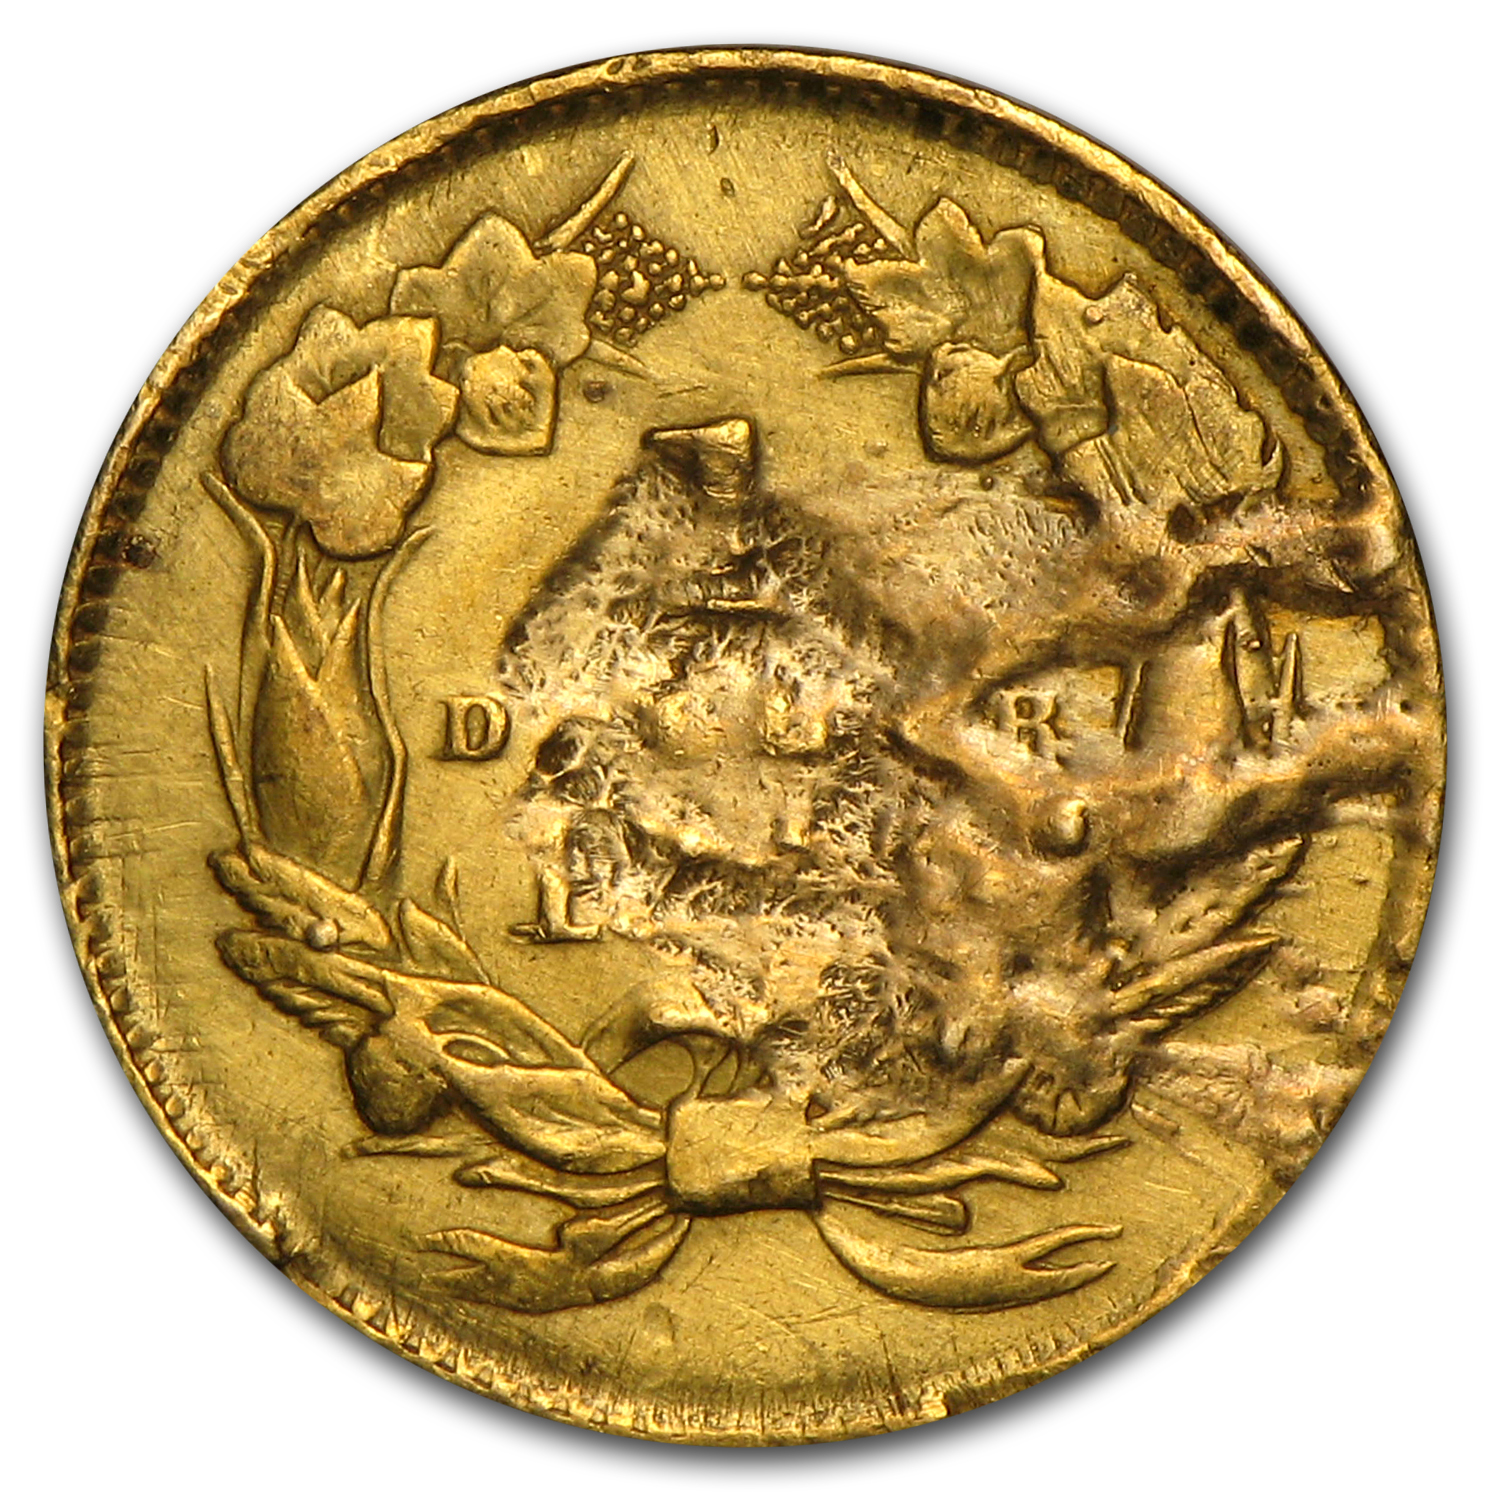 $1 Indian Head Gold - Type 2 - Heavily Damaged